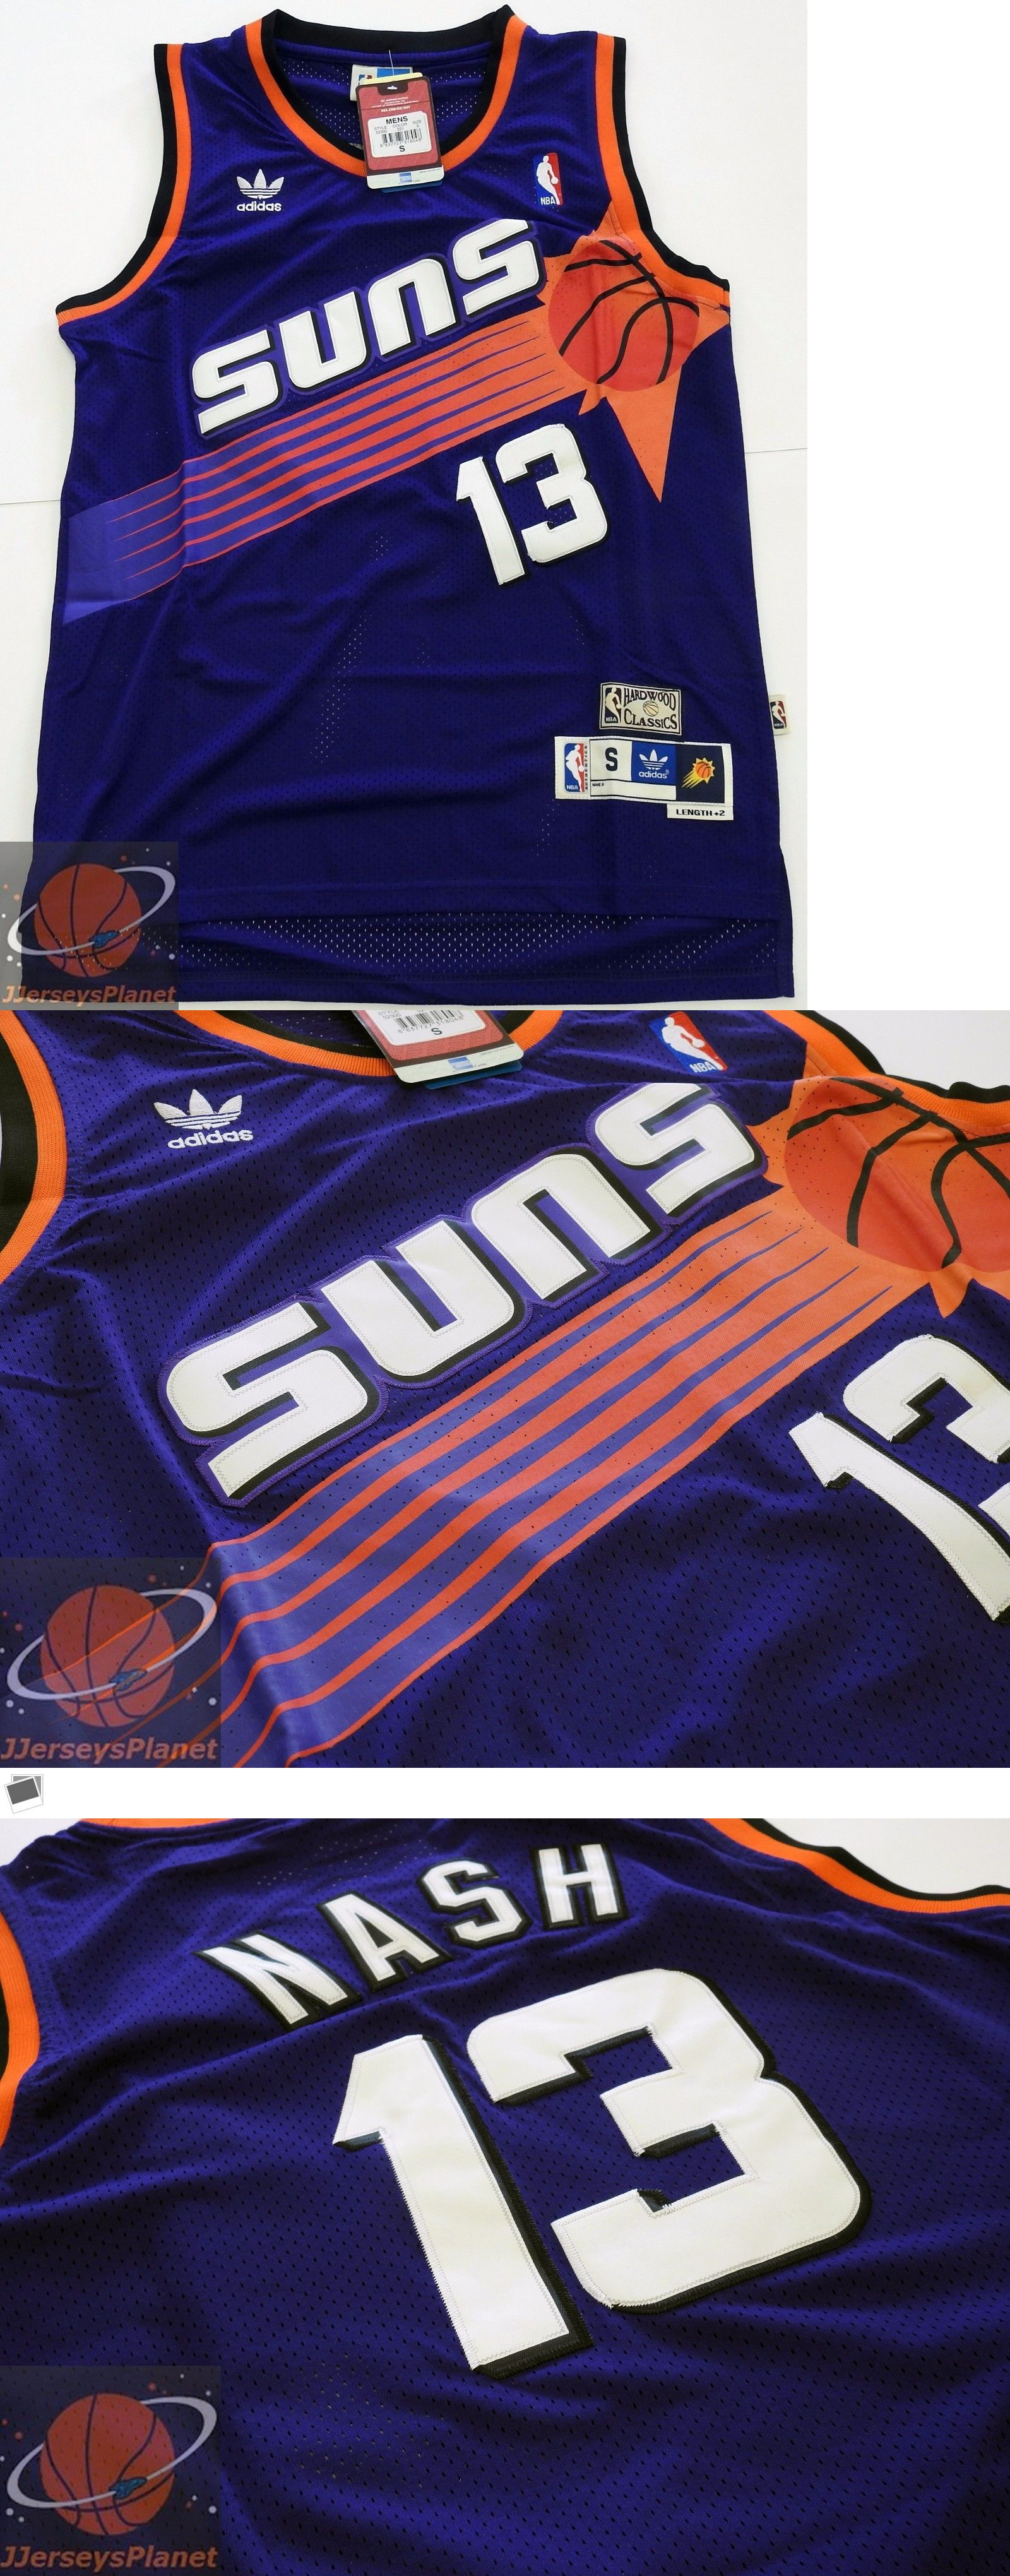 3d5773f5d40 ... black swingman throwback soul jersey s 2xl  basketball nba 24442 nwt  throwback swingman basketball jersey steve nash 13 phoenix suns purple